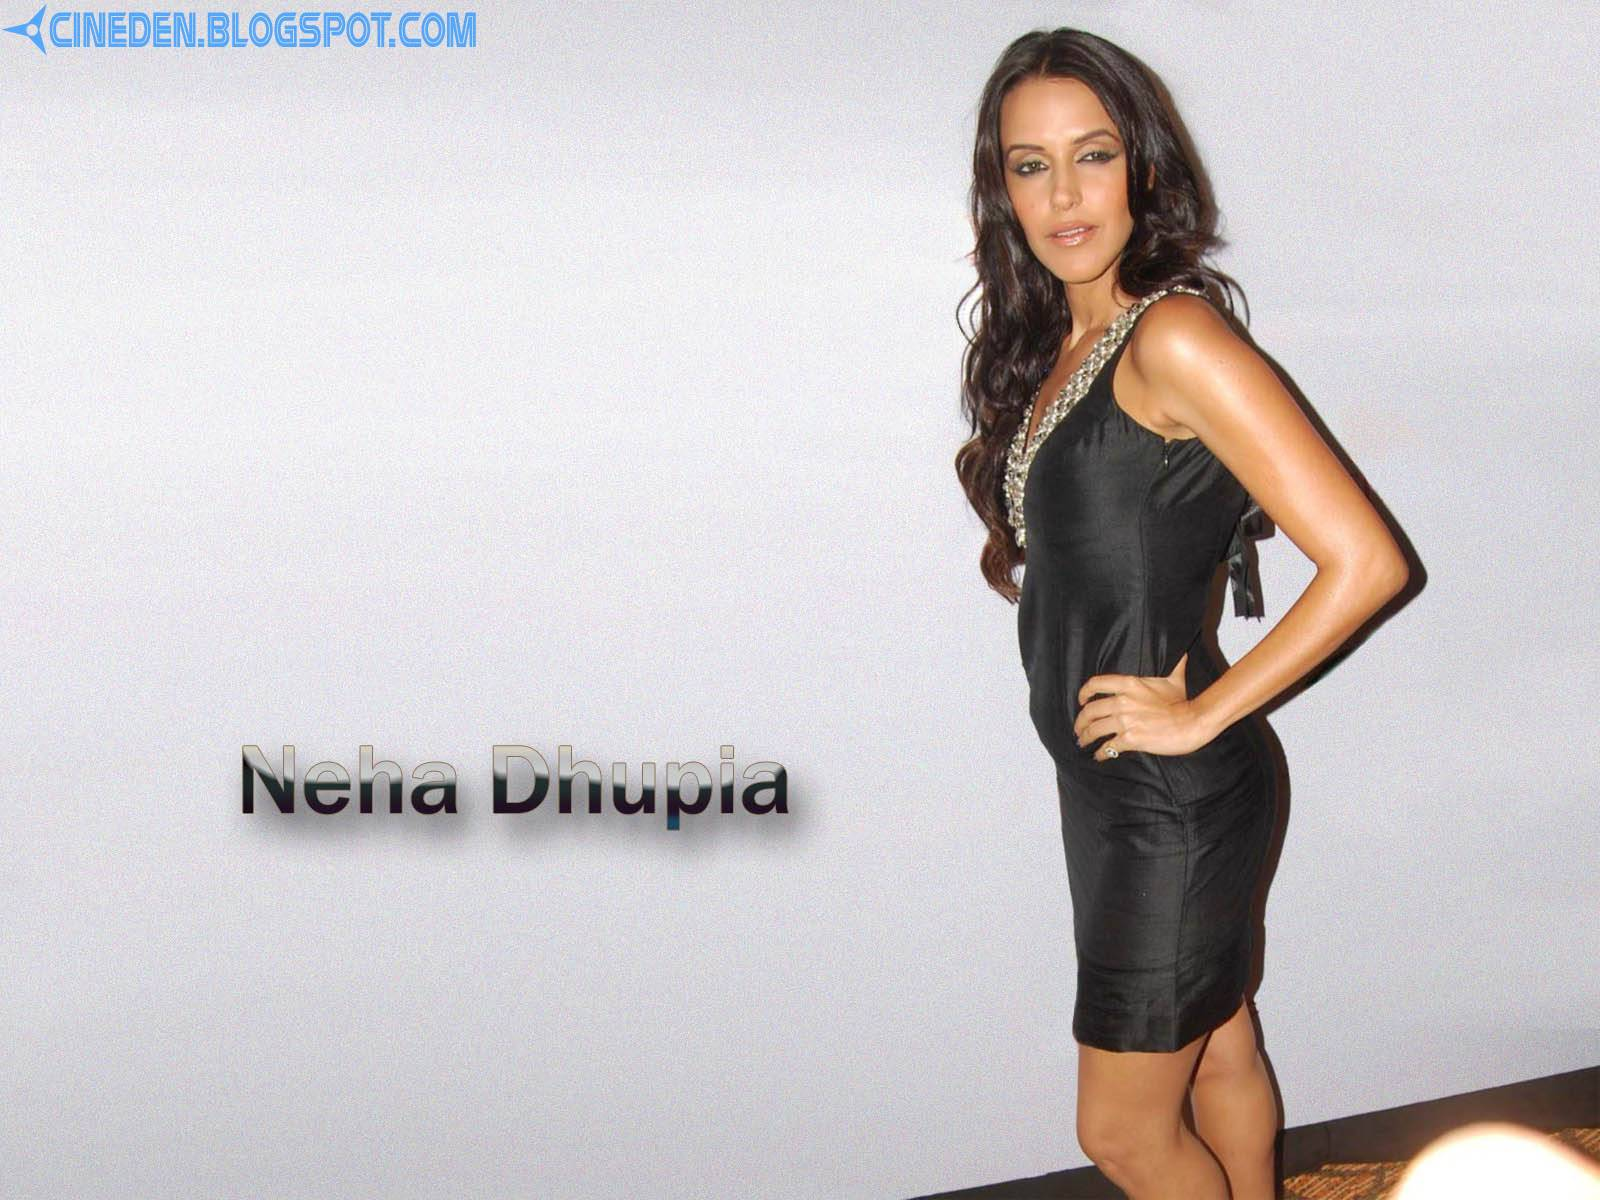 Neha Dhupia wants a simple wedding